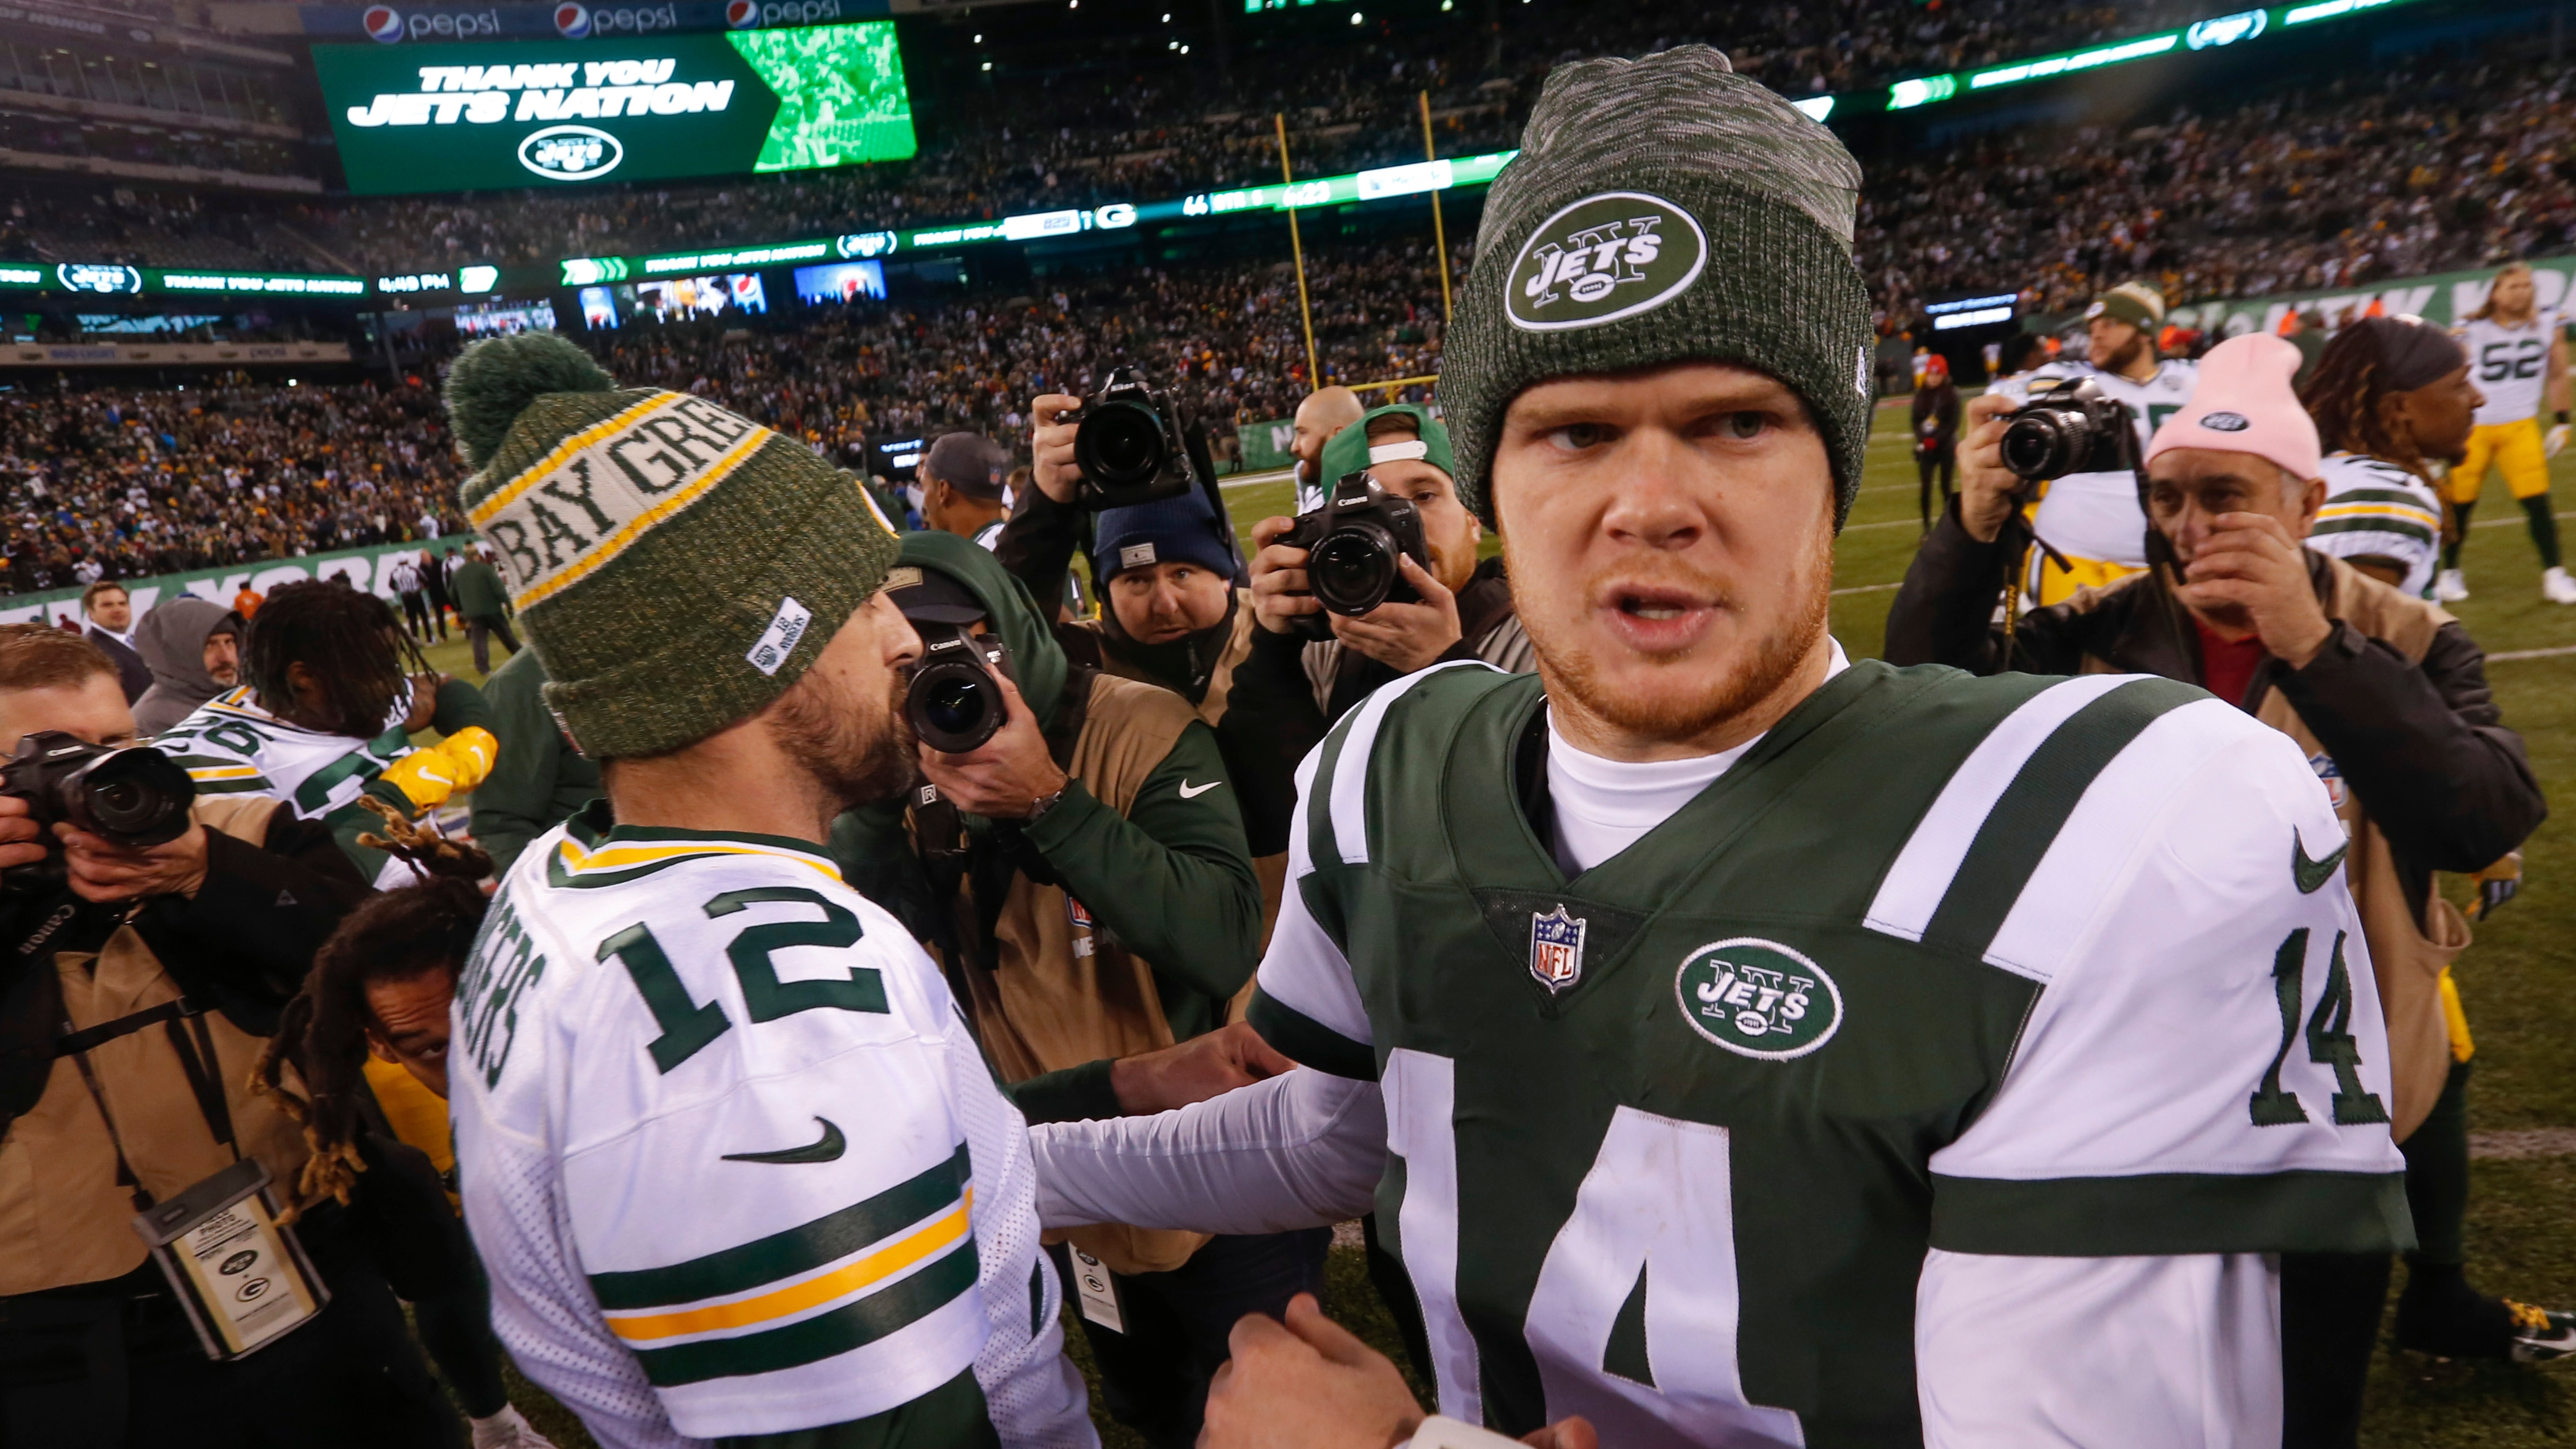 Giants 2019 schedule: Ranking toughest QBs they'll face | How do New England Patriots' Tom Brady, Green Bay Packers' Aaron Rodgers, Eagles' Carson Wentz, Jets' Sam Darnold stack up?